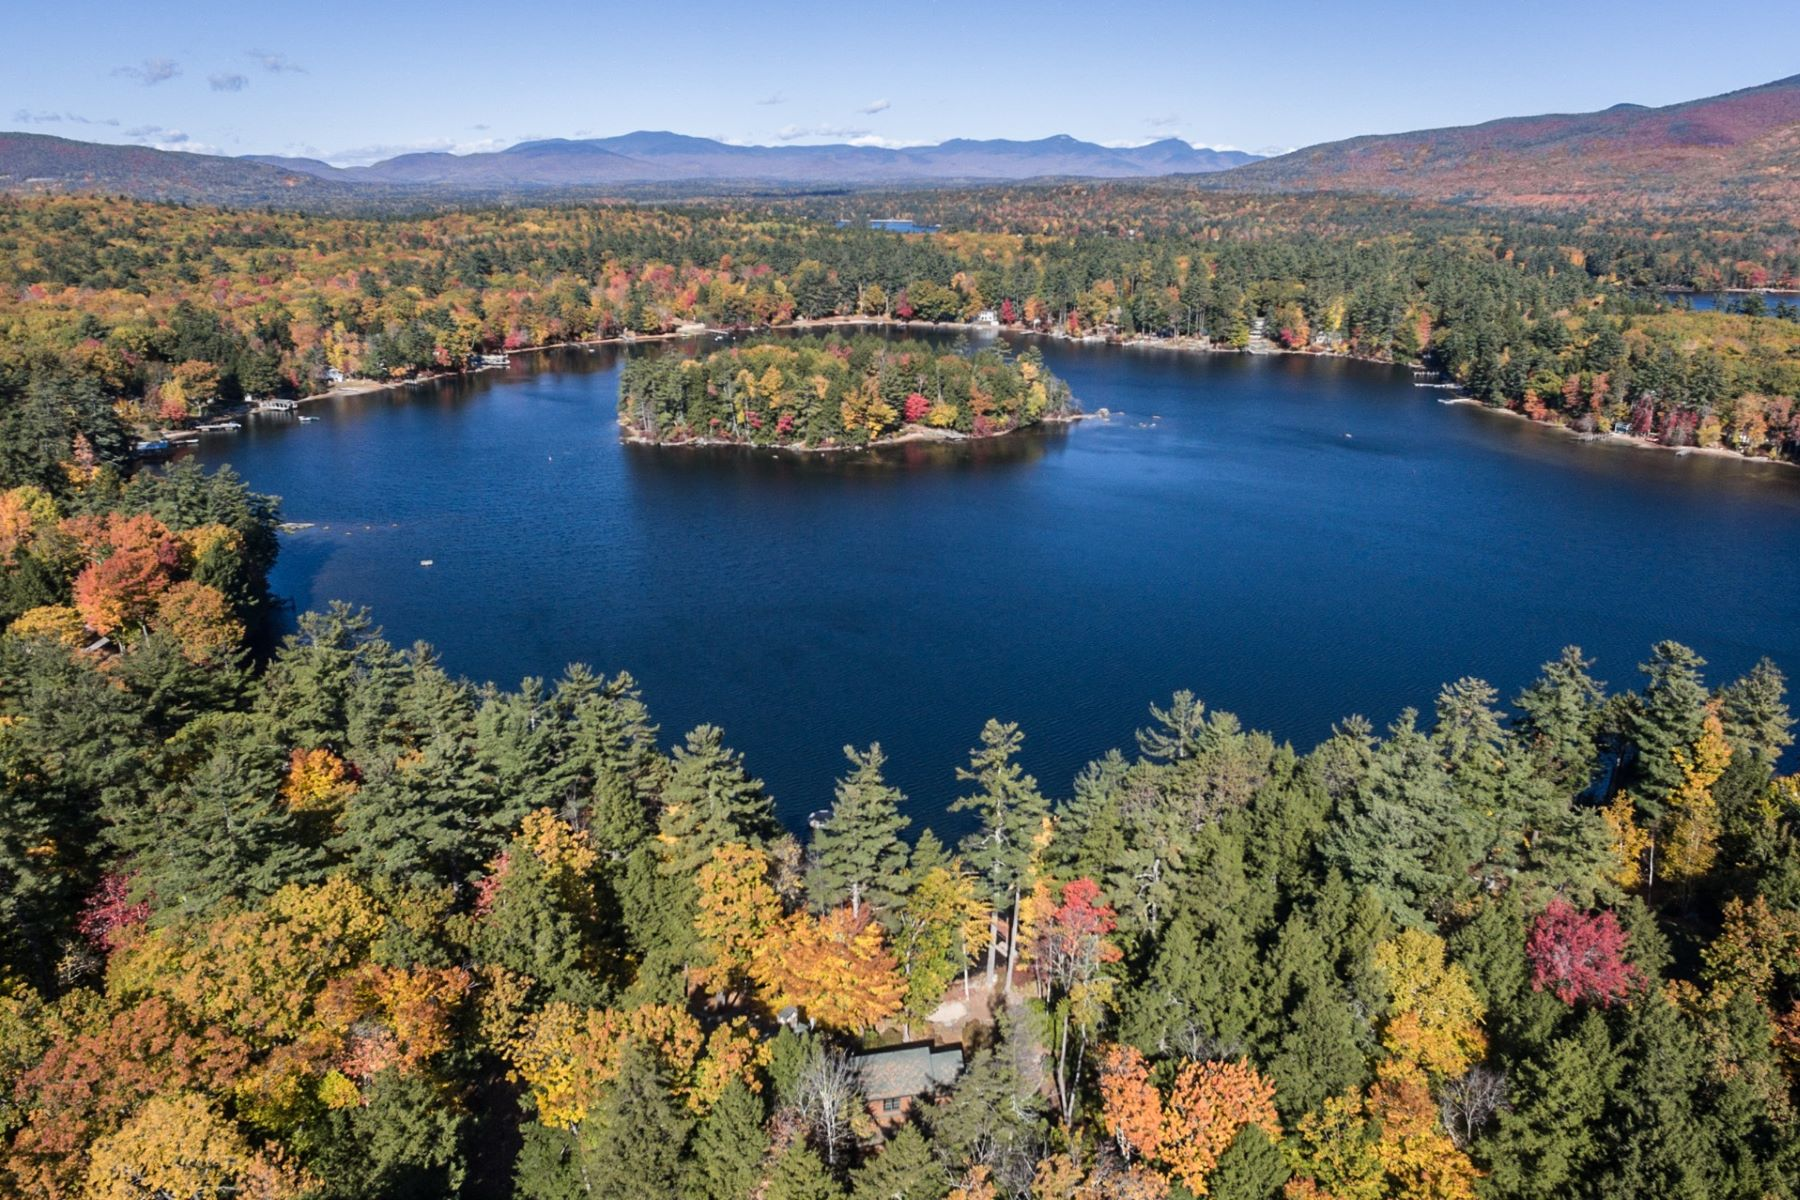 Single Family Home for Sale at Buzzells Cove on Lake Winnipesaukee 131 Buzzells Cove Rd Moultonborough, New Hampshire 03254 United States